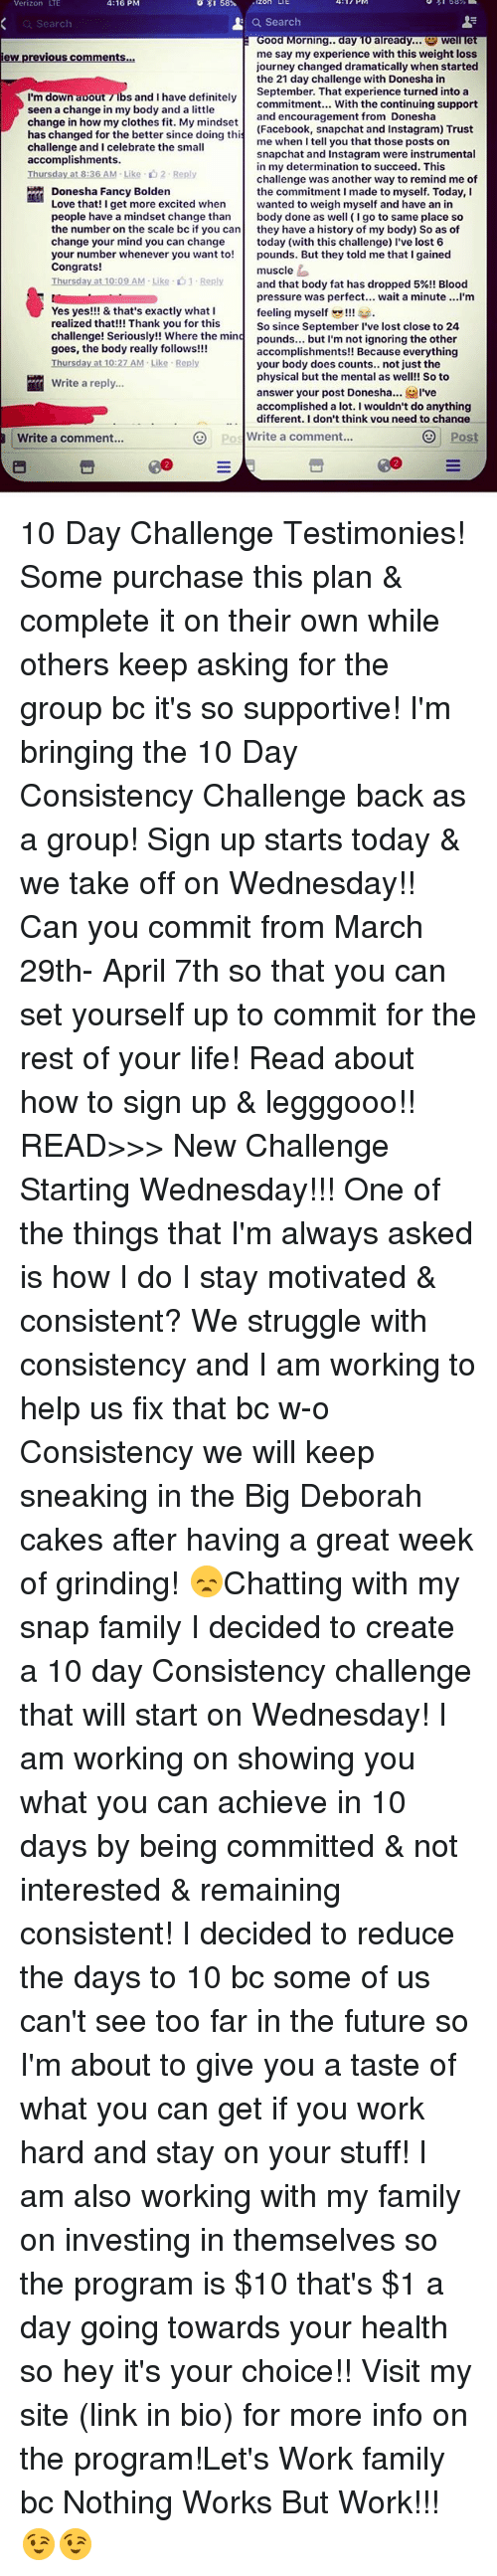 Big Deborah: Verizon LTE  4:16 PM  o 58  Search  a Search  ood Morning.. day 10 already.  Well lee  me say my experience with this weight loss  iew previous comments.  journey changed dramatically when started  the 21 day challenge with Donesha in  September. That experience turned into a  I'm down apout 7 lbs and I have definitely  commitment... With the continuing support  seen a change in my body and a little  and encouragement from Donesha  change in how my clothes fit. My mindset  (Facebook, snapchat and Instagram) Trust  has changed for the better since doing thi  me when I tell you that those posts on  challenge and I celebrate the small  snapchat and Instagram were instrumental  accomplishments.  in my determination to succeed. This  Thursday at 8:36 AM-Like 2. Reply  challenge was another way to remind me of  Donesha Fancy Bolden  the commitment I made to myself. Today, I  Love that! I get more excited when  wanted to weigh myself and have an in  people have a mindset change than  body done as well (Igo to same place so  the number on the scale bo if you can  they have a history of my body) So as of  change your mind you can change  today (with this challenge) l've lost 6  your number whenever you want to!  pounds. But they told me that gained  Congrats!  muscle  Thursday at 10:09 AM Like 1. Reply  and that body fat has dropped 5%!! Blood  pressure was perfect  wait a minute ...I'm  feeling myself  Yes yes!!! & that's exactly what I  realized that!!! Thank you for this  So since September l've lost close to 24  challenge! Seriously!! Where the mind pounds.  but I'm not ignoring the  other  goes, the body really follows!!!  accomplishments!! Because everything  Ihursday at 10:27 AM Like Reply  your body does counts.. not just the  physical but the mental as well!! So to  Write a reply.  answer your post Donesha  I've  accomplished a lot. I wouldn't do anything  different. Idon't think vou need to chanae  Write a comment  Write a comment  OS 10 Day Challenge 